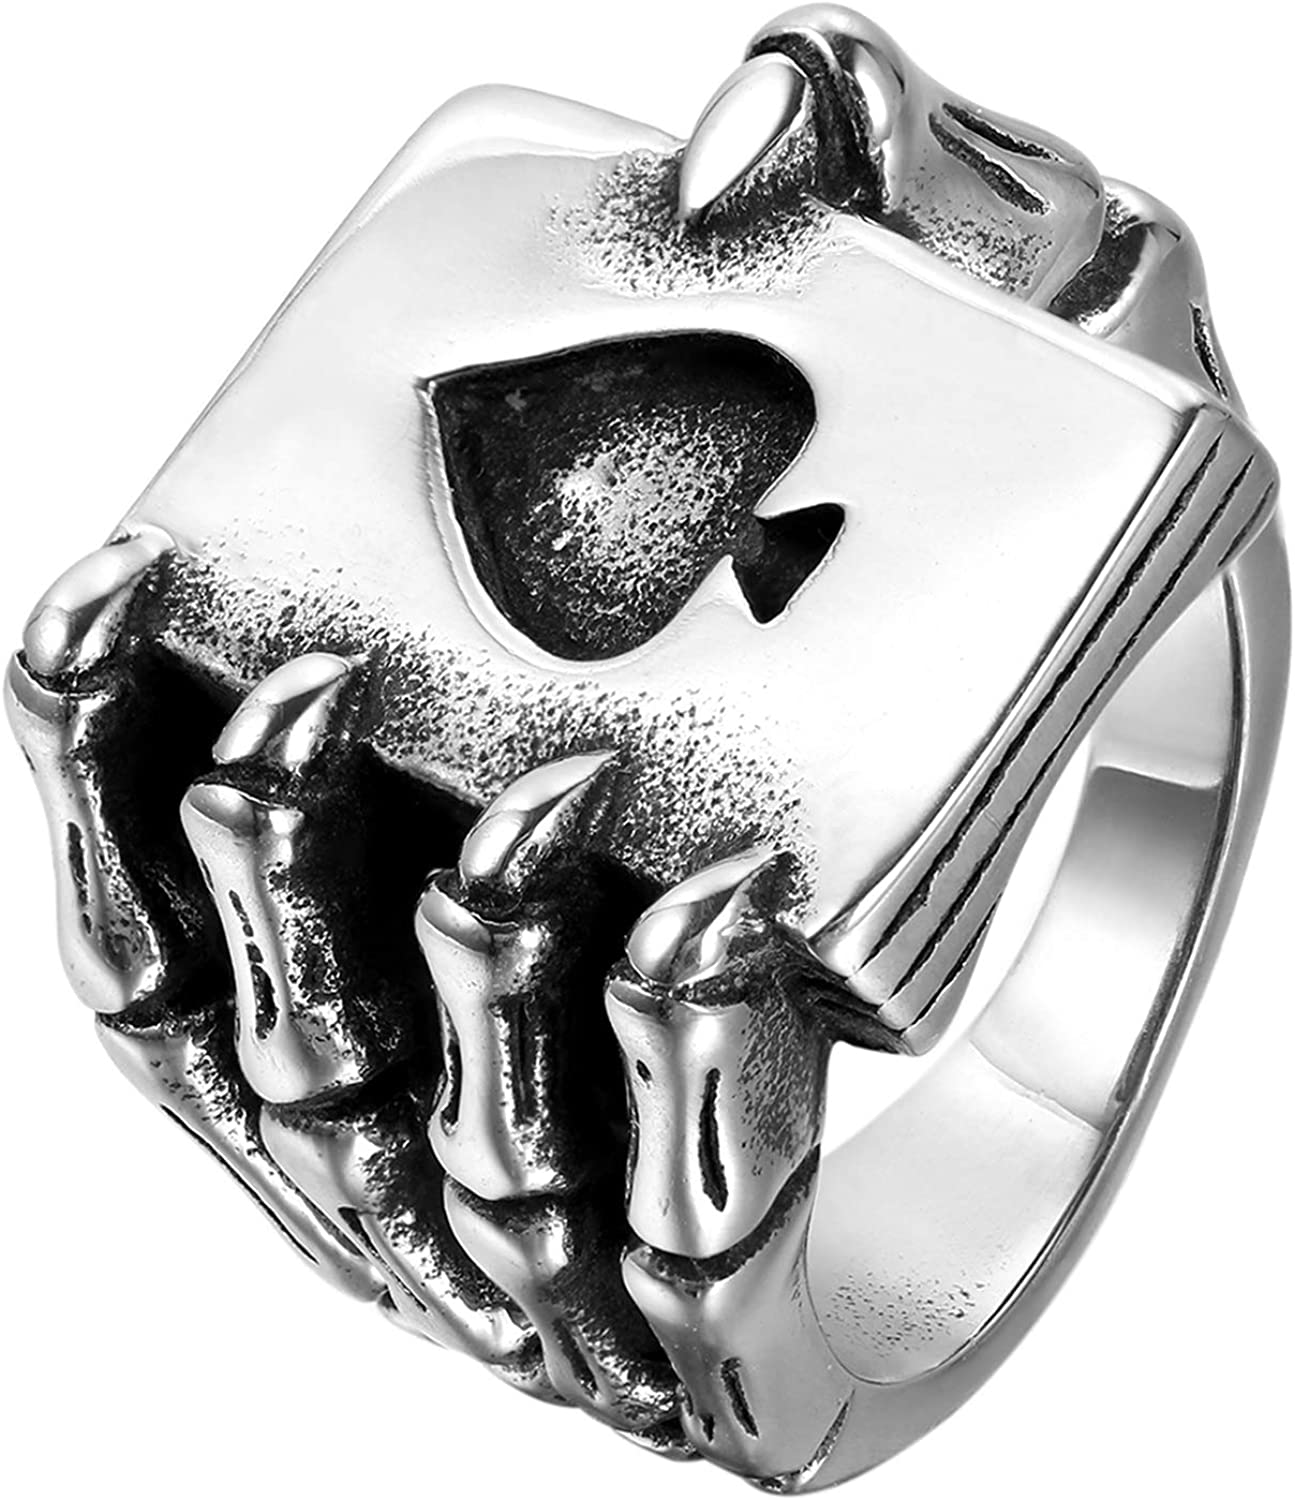 OIDEA Stainless Steel Bikers Gothic Skull Hand Claw Poker Card Ace Charm Ring Bands for Men Halloween Cosplay,Size